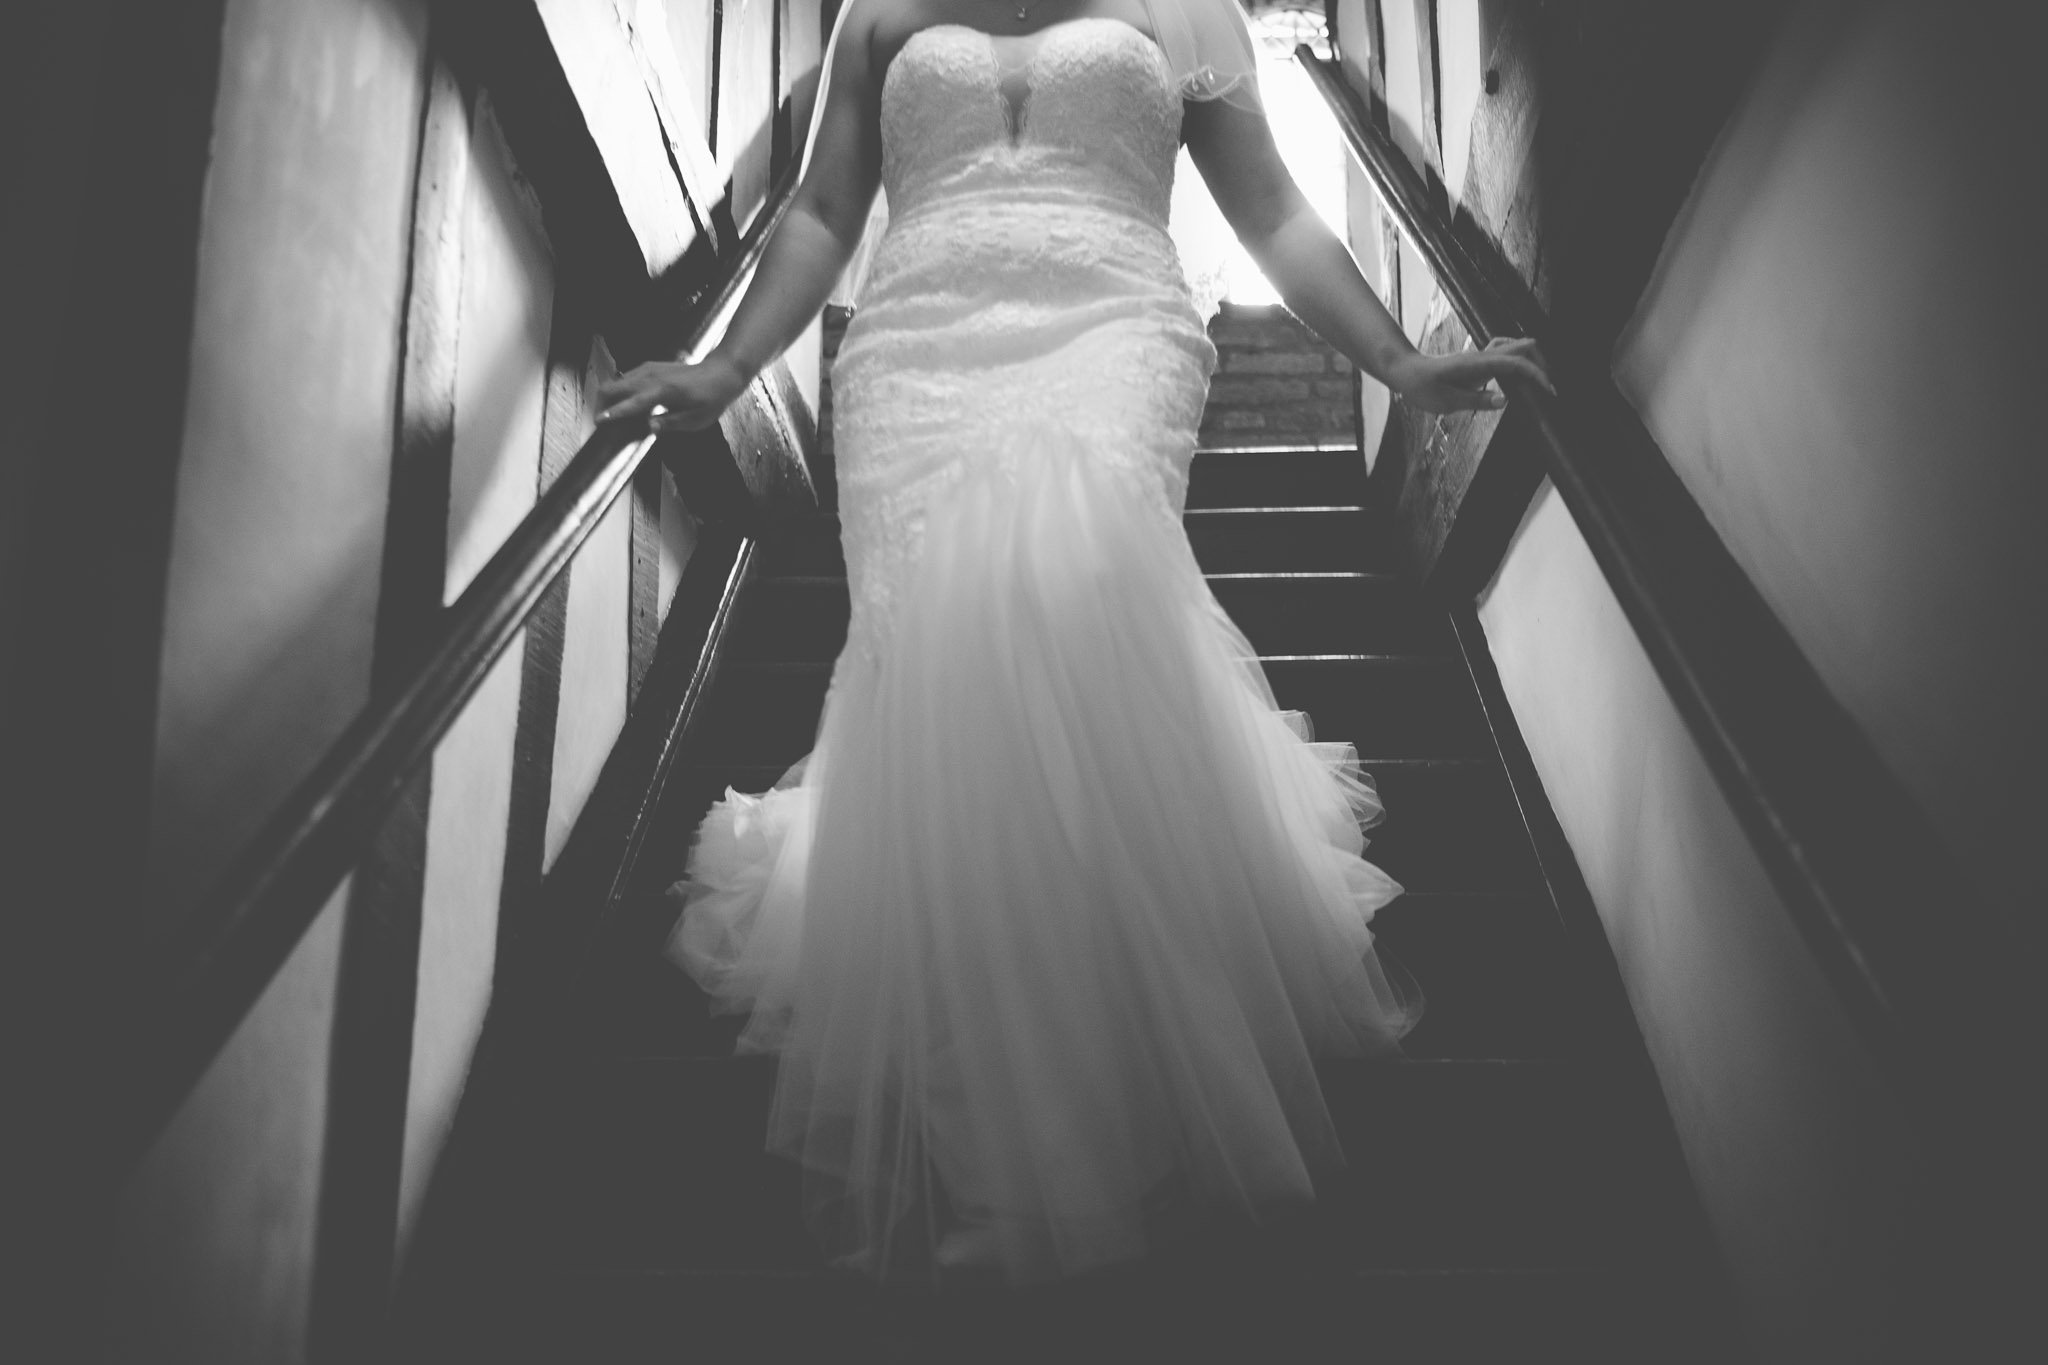 Bride walking down stairs at Leez Pirory Wedding. Photography by thatthingyoupluck.